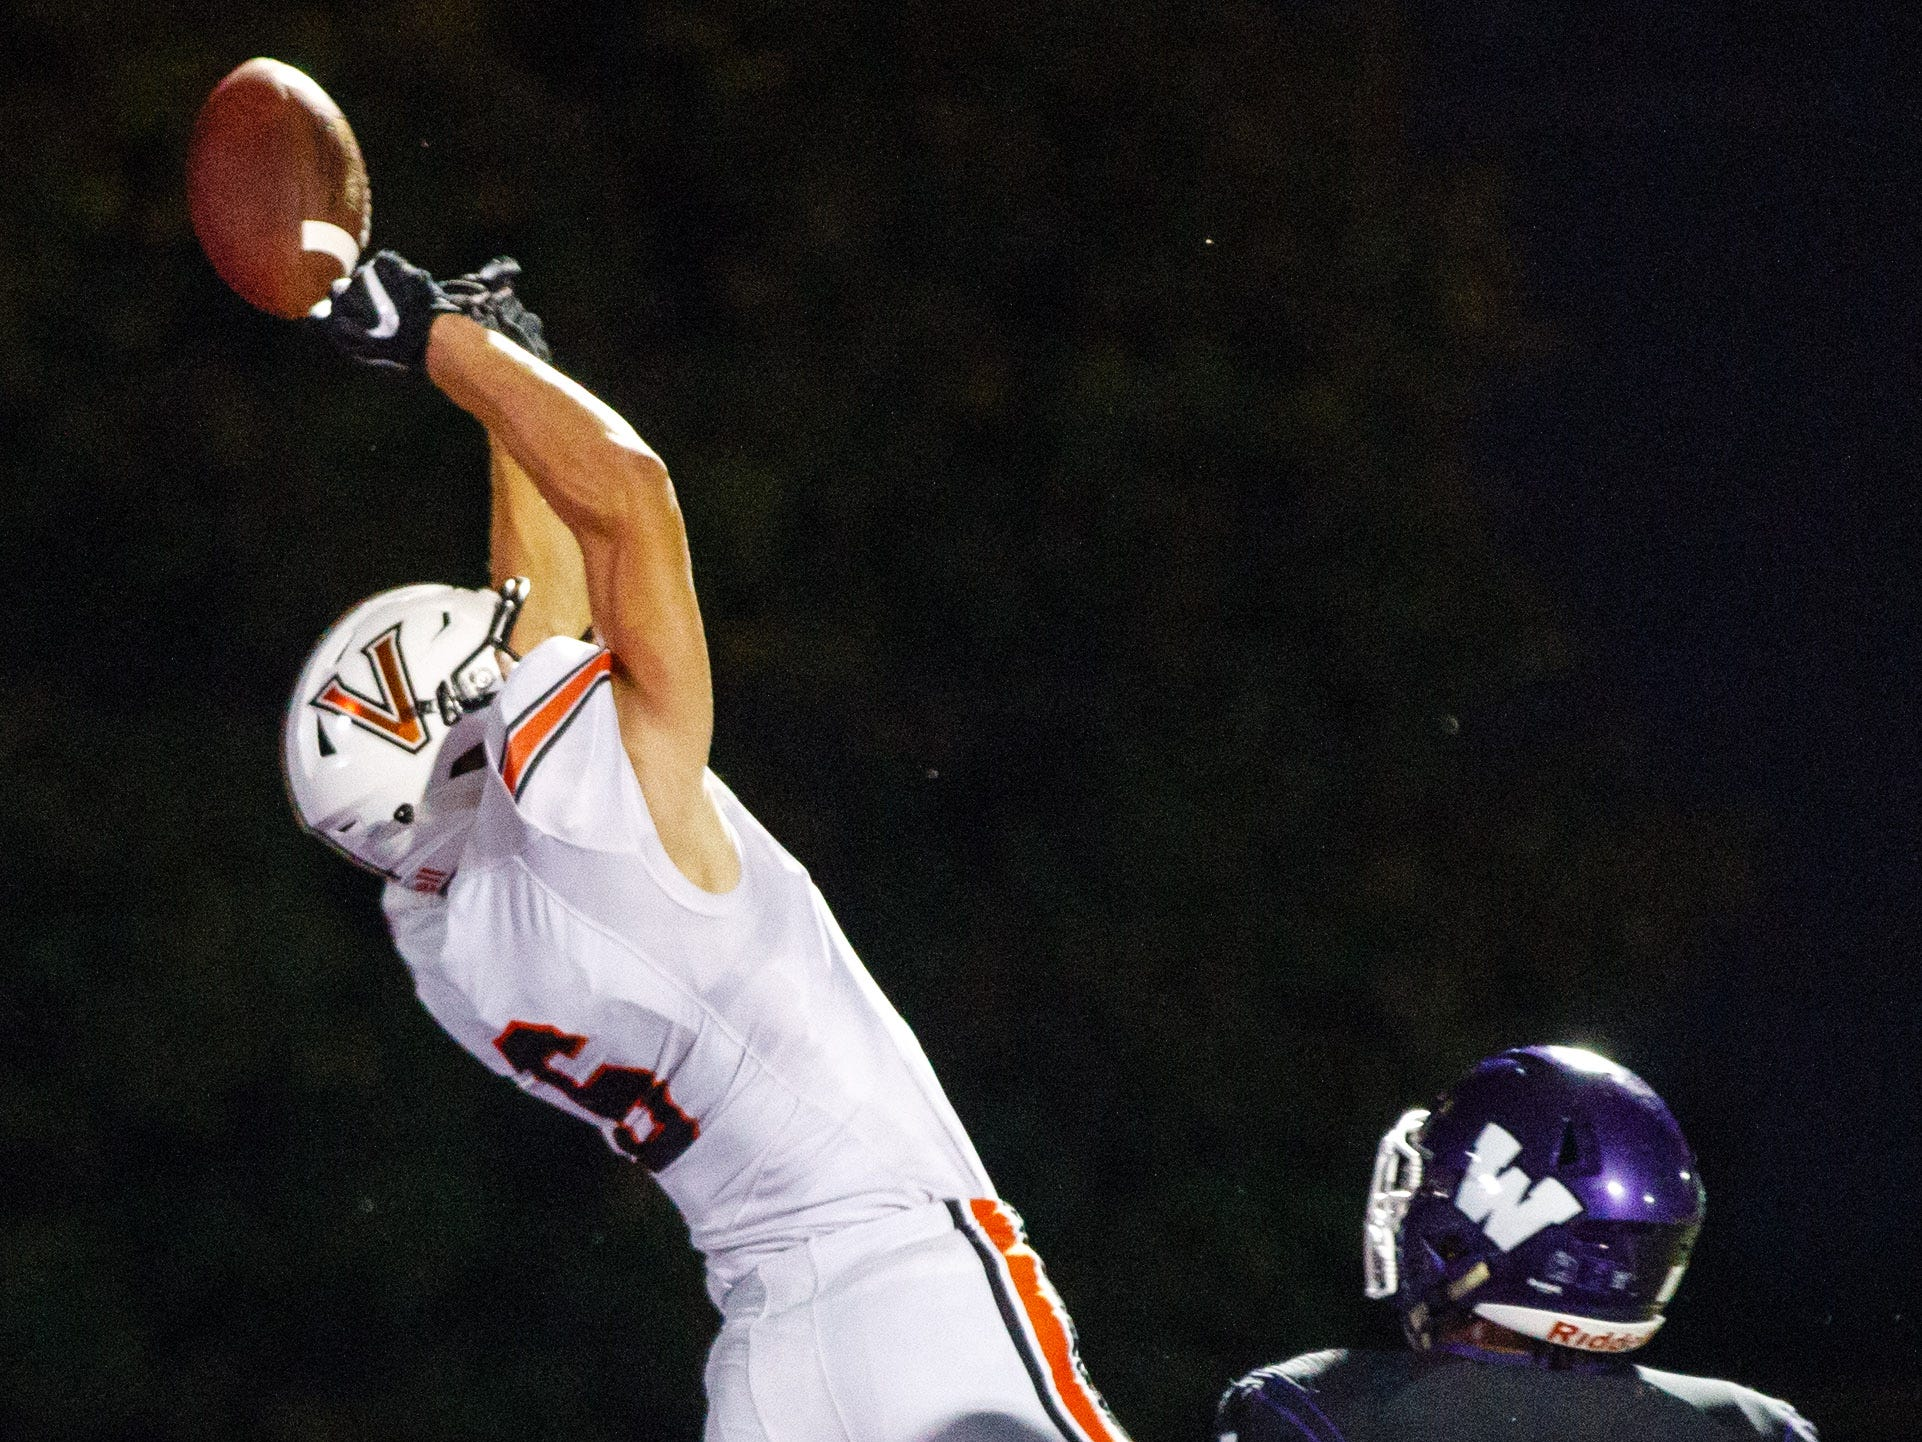 Valley High School's Parker Marschel (6) tries to pull in a pass in the end zone over Waukee's Aaron Smith (5) in the second quarter Friday, Sept. 14, 2018, at Waukee Stadium.